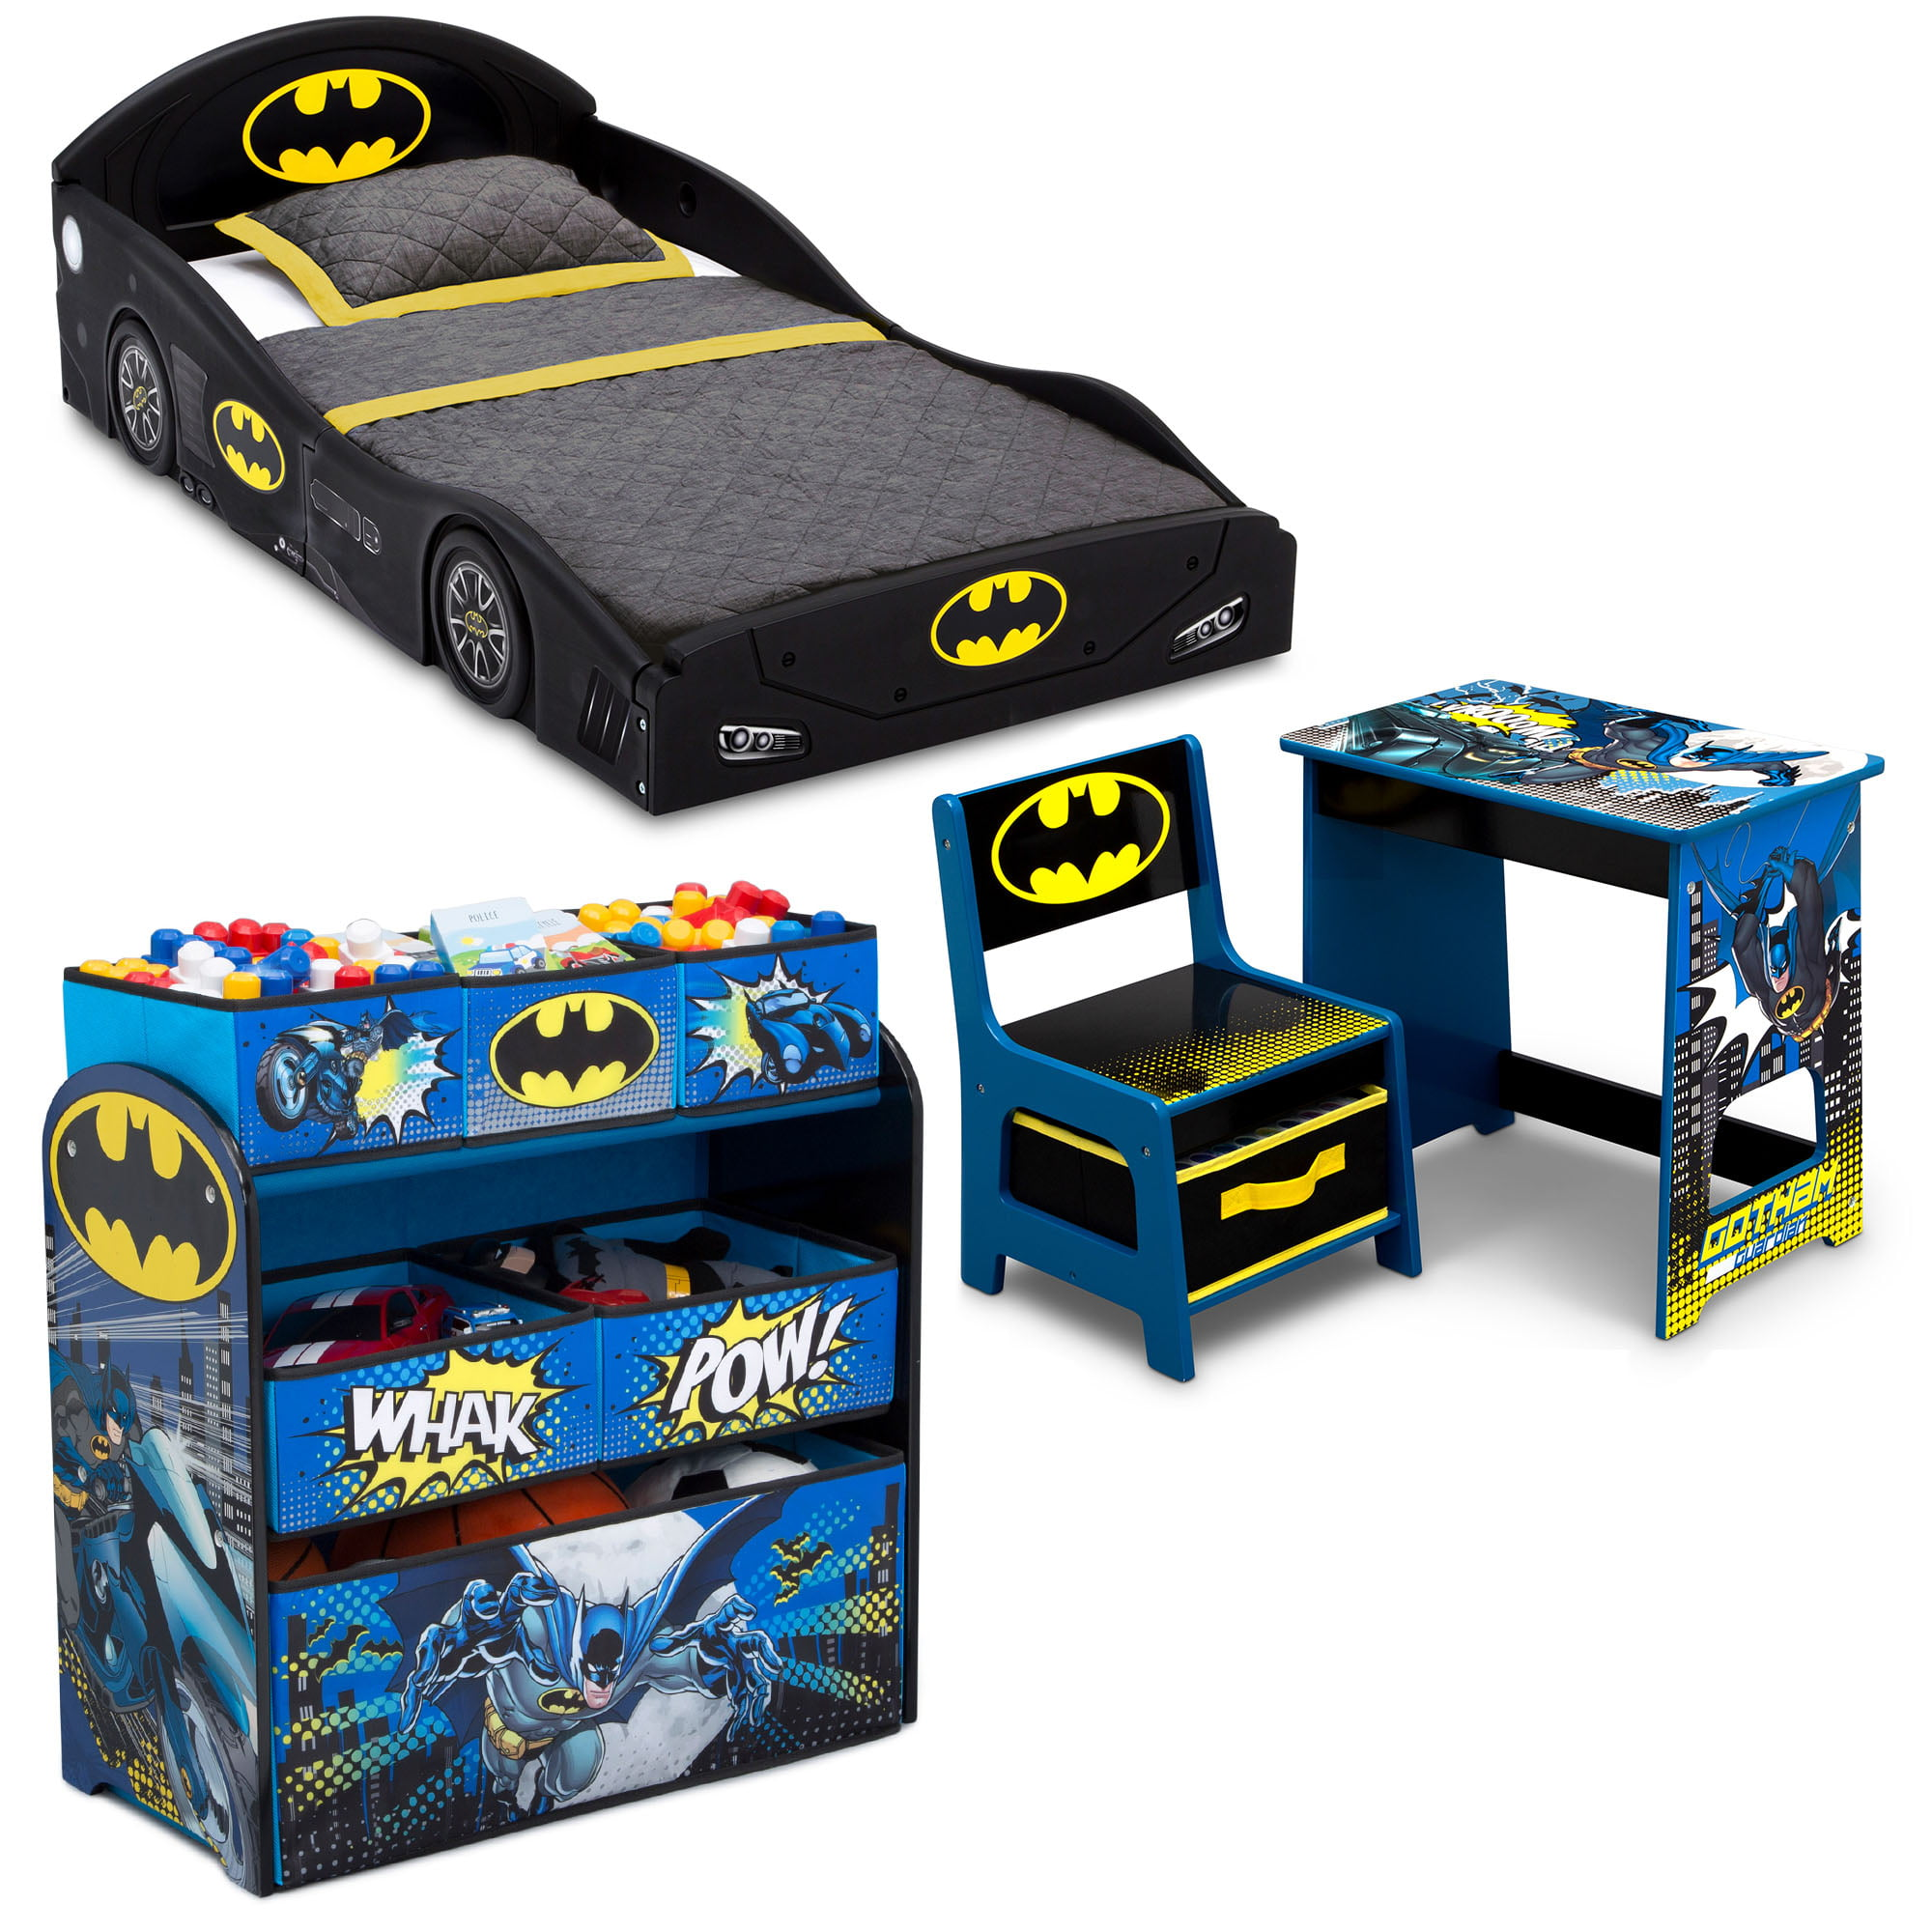 Batman 4 Piece Room In A Box Bedroom Set By Delta Children Includes Sleep Play Toddler Bed 6 Bin Design Store Toy Organizer And Desk With Chair Walmart Com Walmart Com